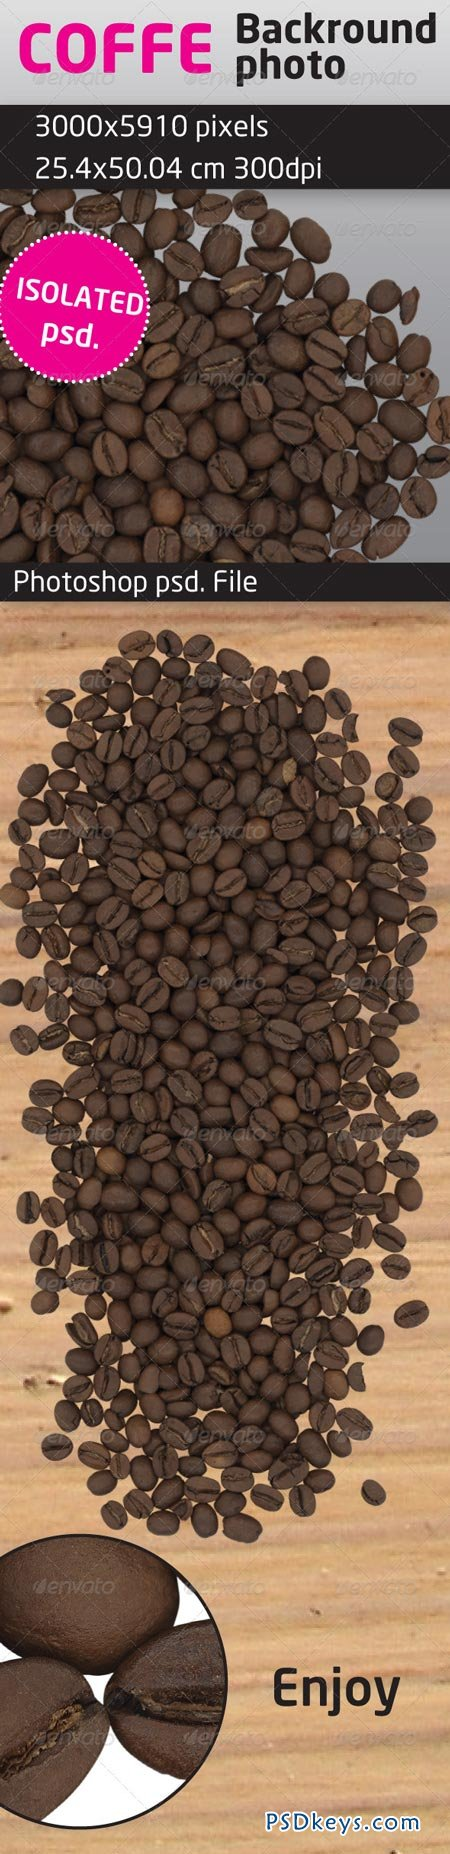 Coffee Beans Isolated Backround 1127683